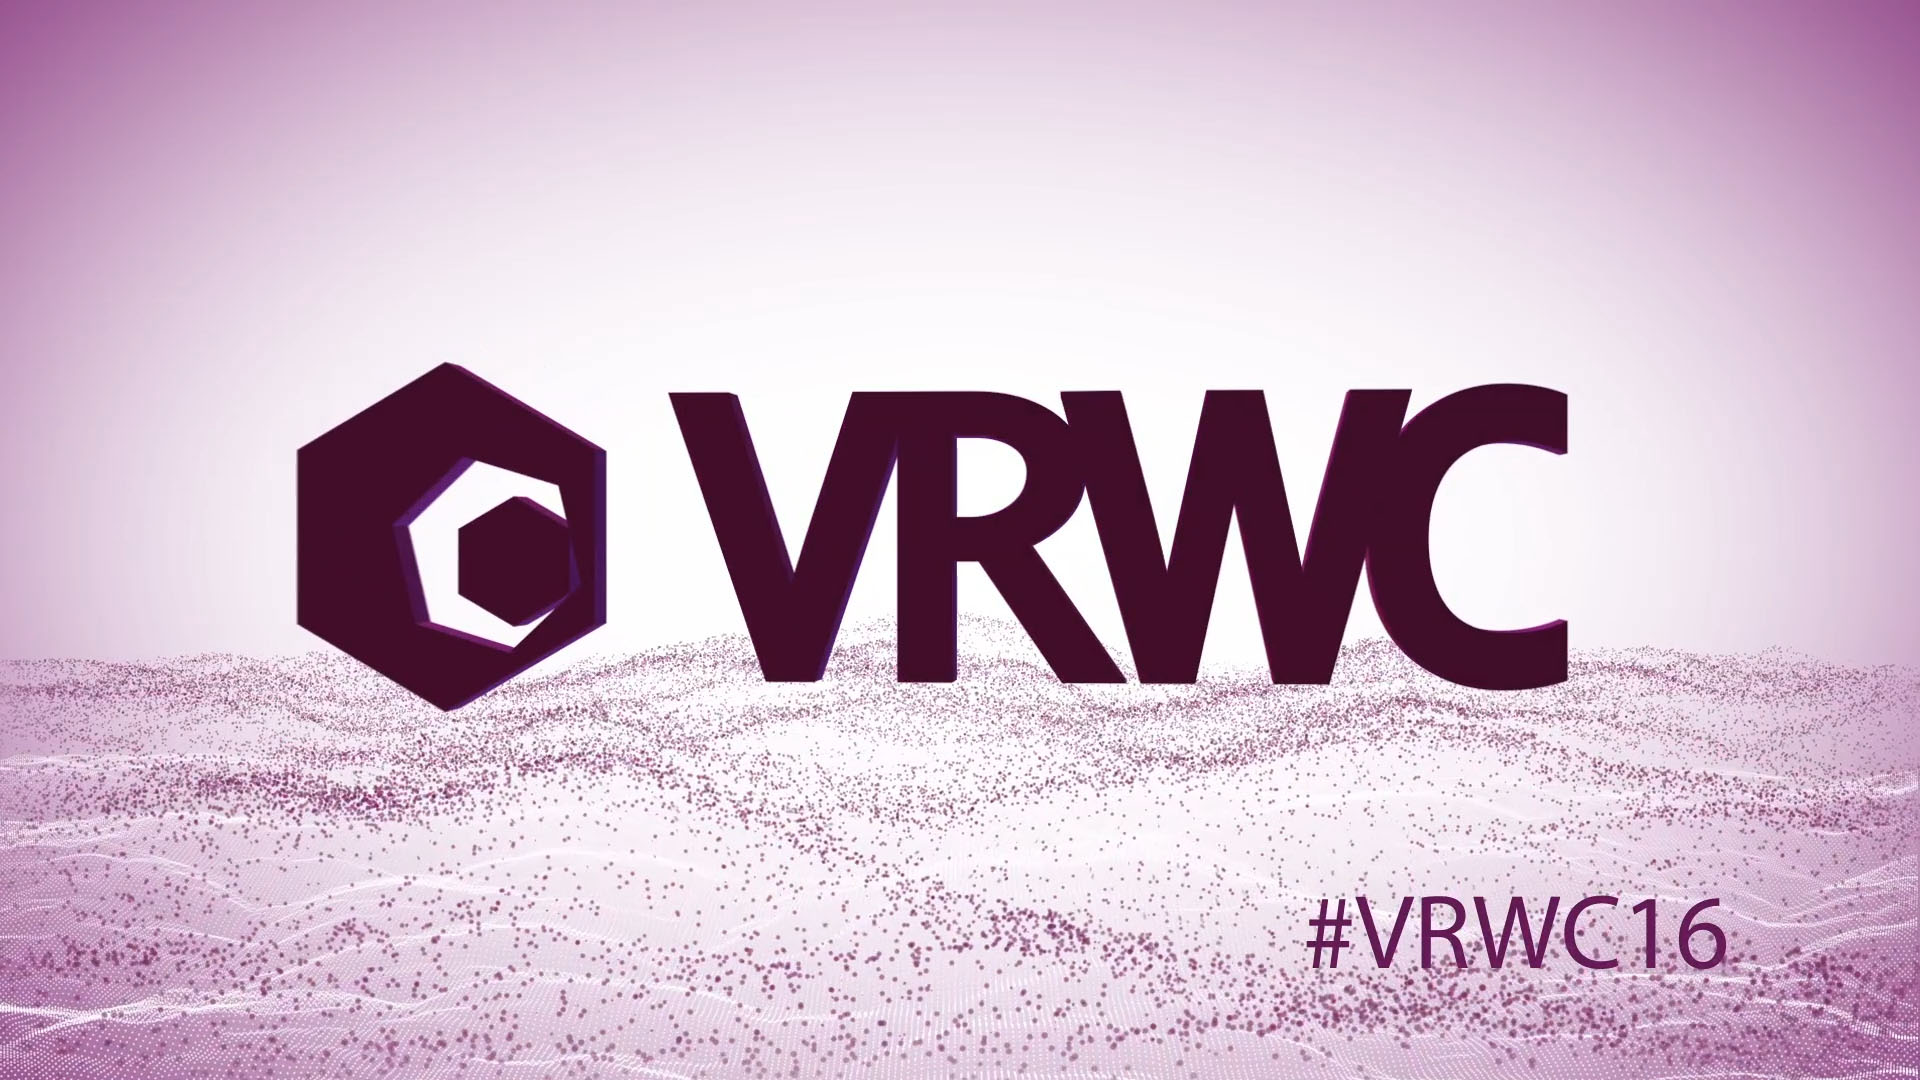 VRWC Animated Logo